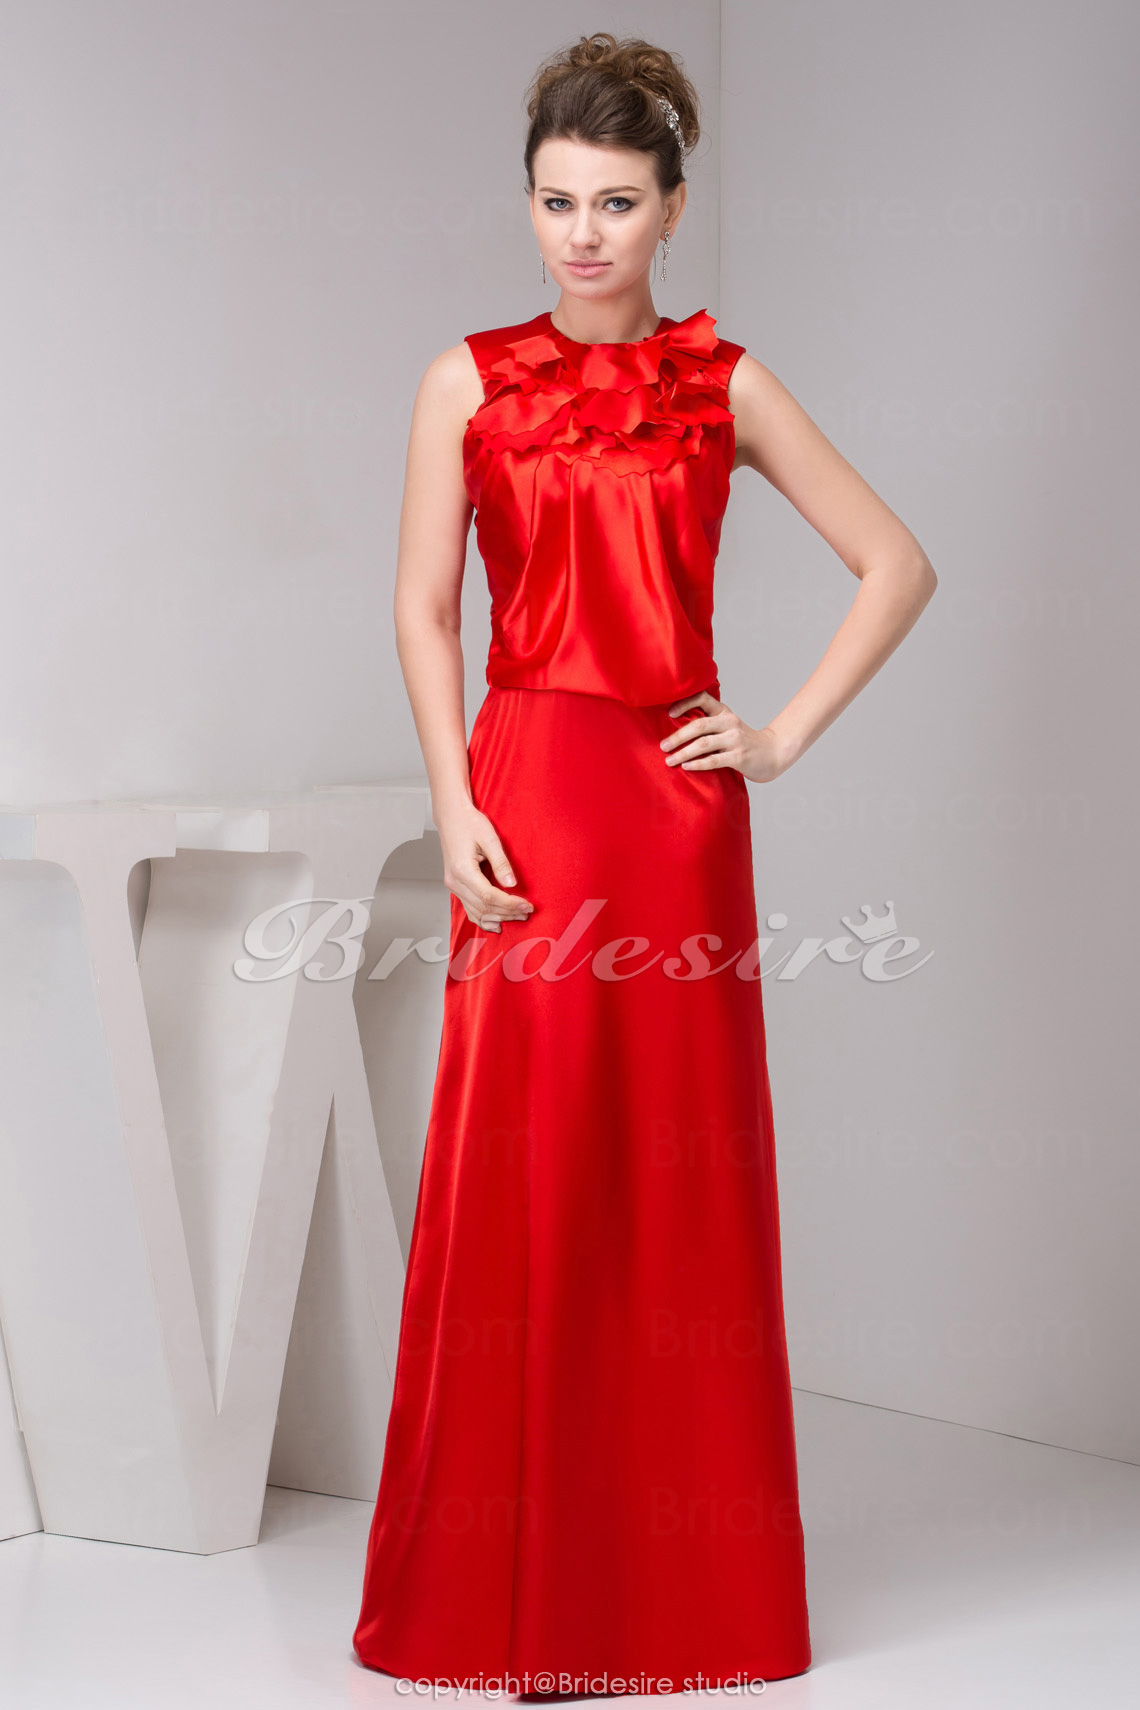 A-line Scoop Floor-length Sleeveless Satin Dress